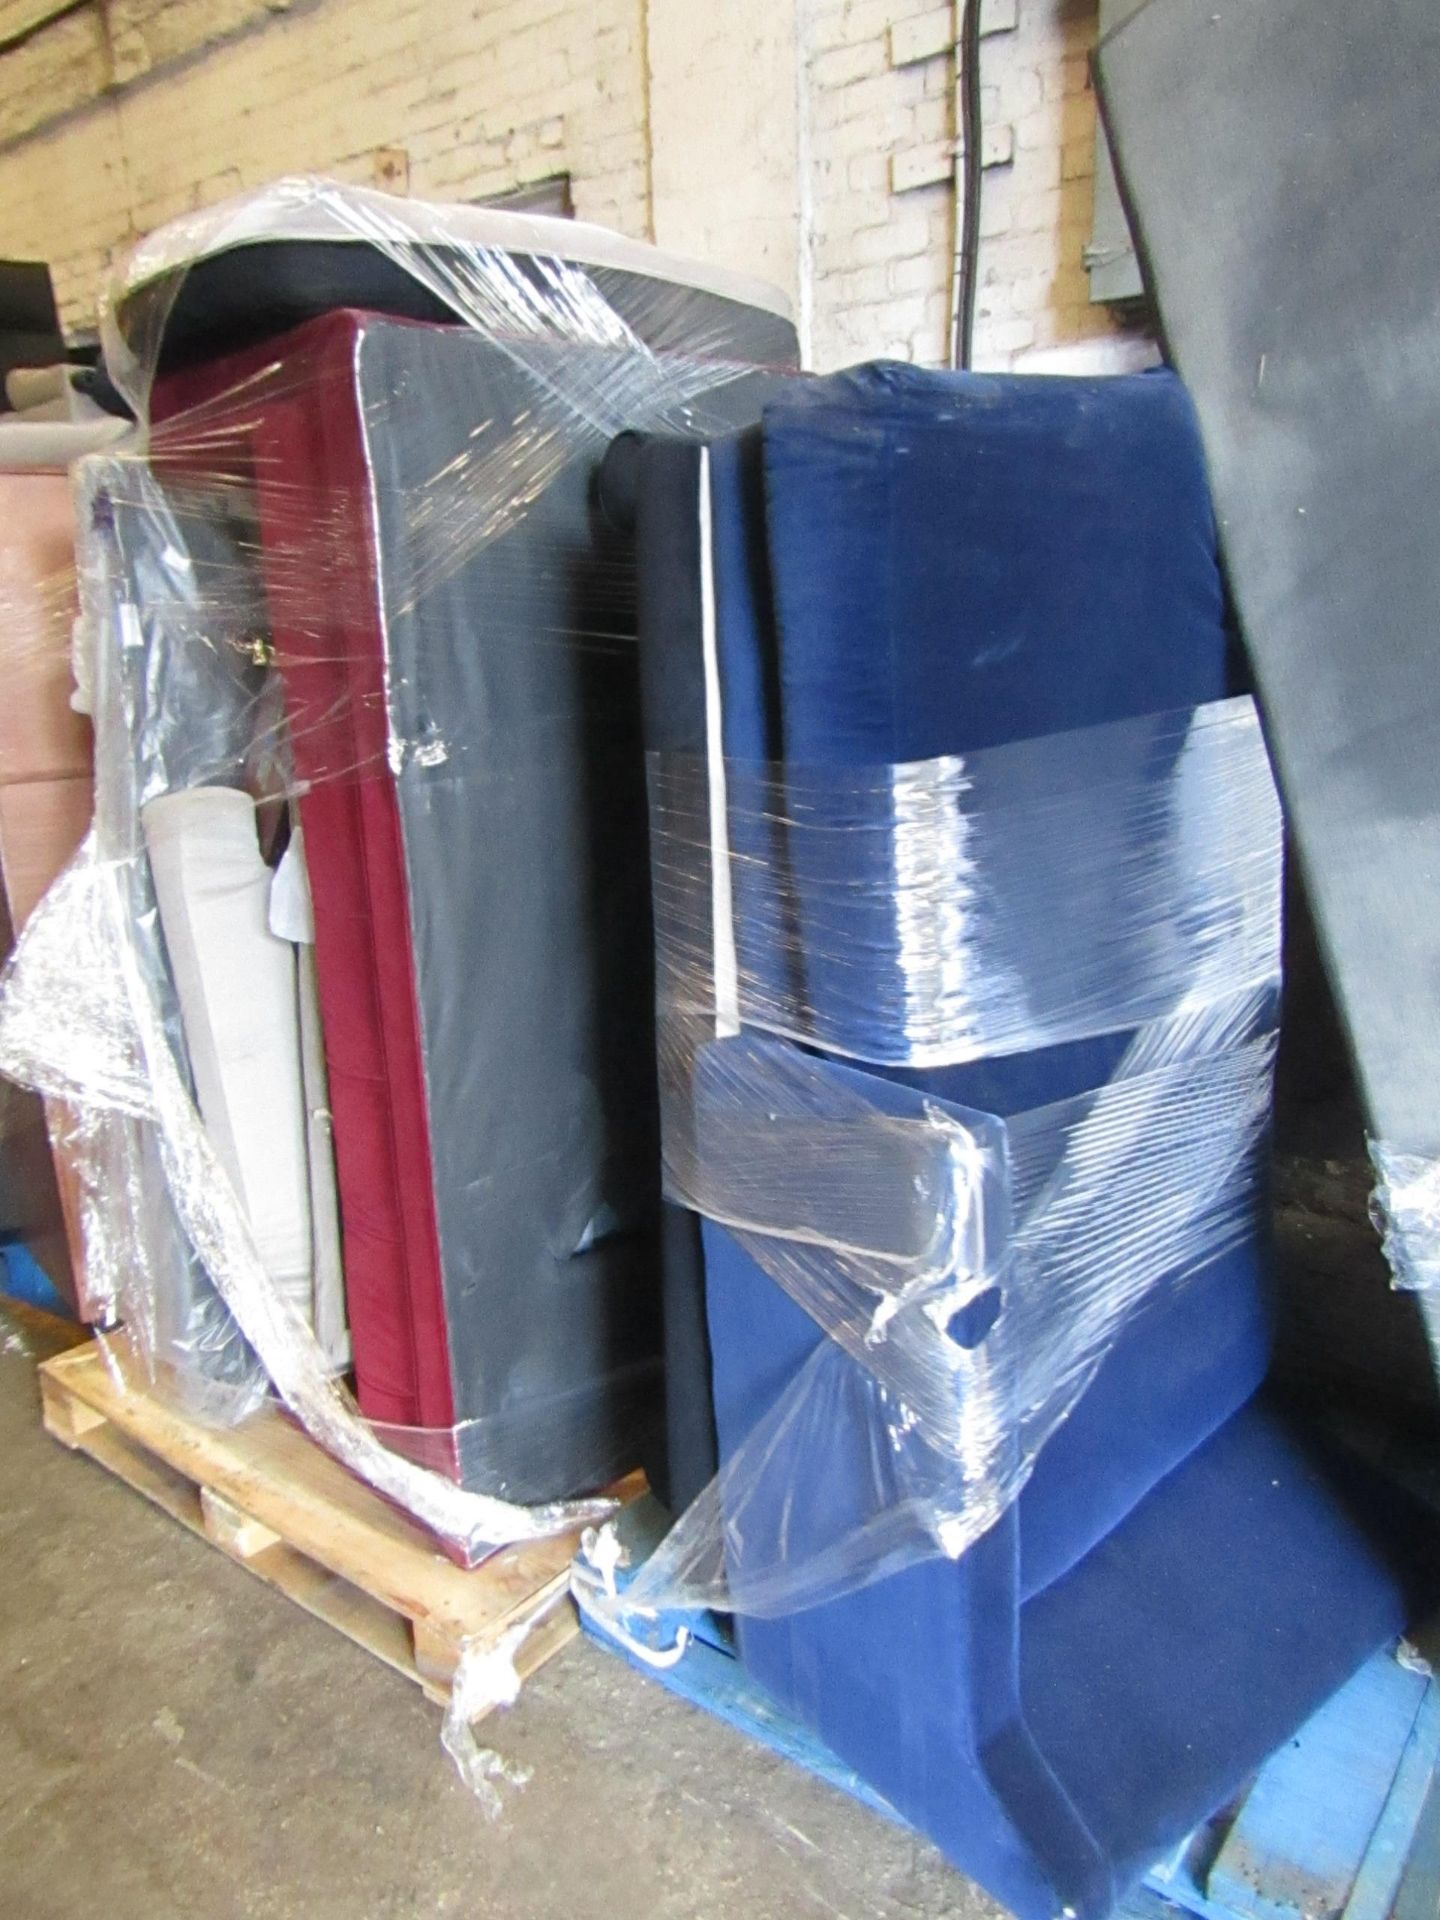 | 13X | PALLETS OF SWOON BER SOFAS, THESE ARE CUSTOMER RETURNS SO COULD HAVE MINOR DAMAGE, MAJOR - Image 4 of 11